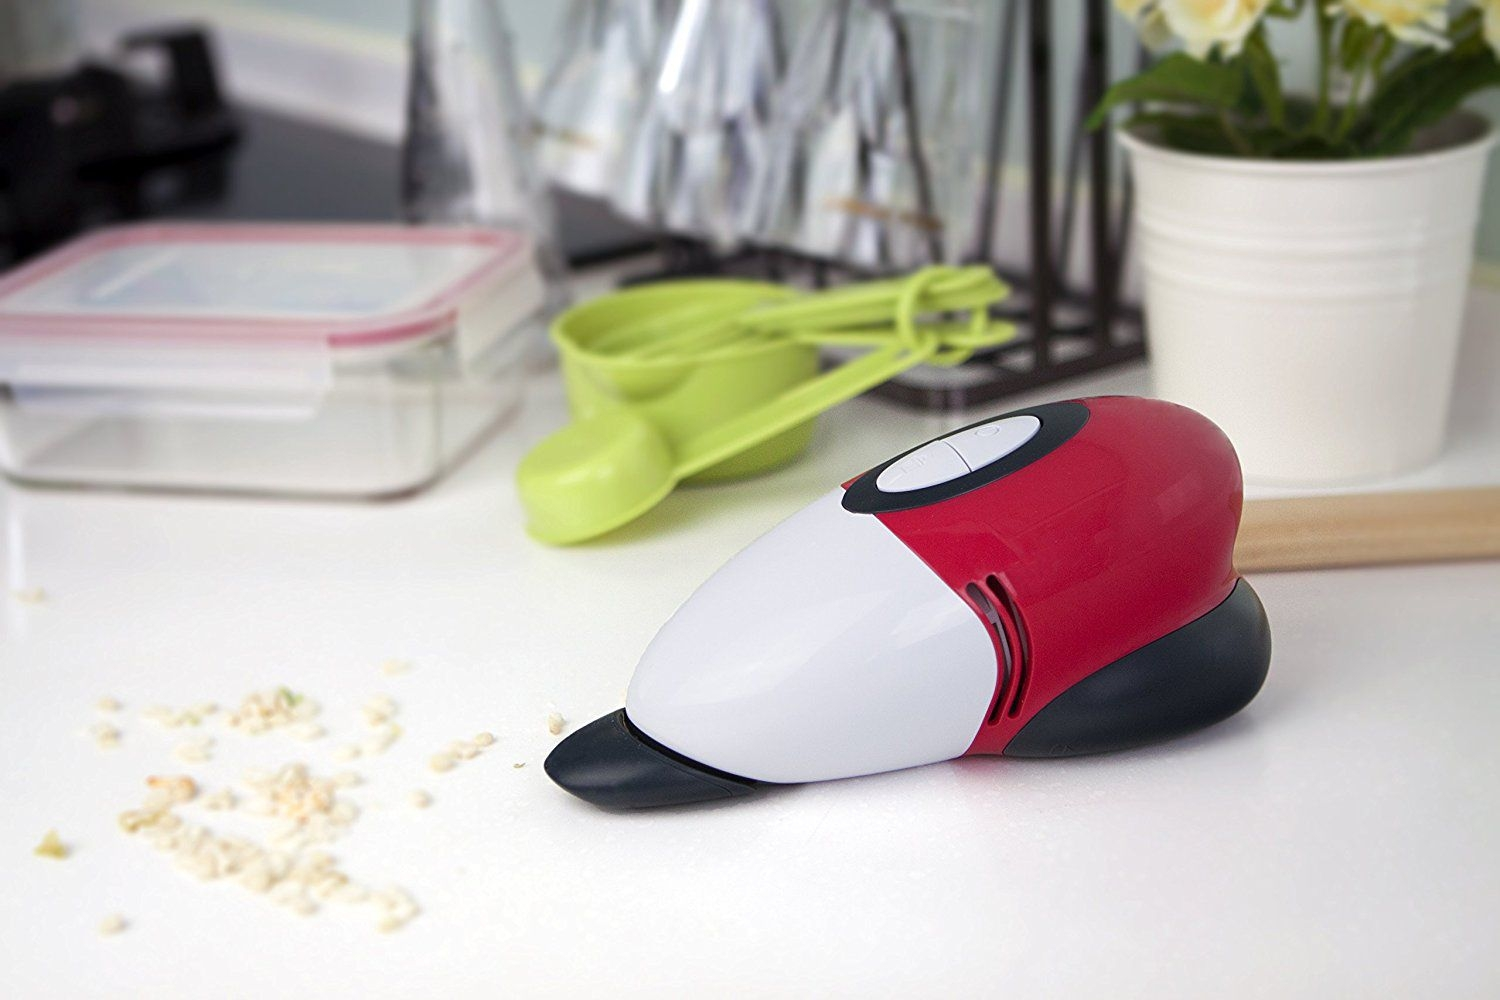 Livion Mini Desk Vacuum Cleaner